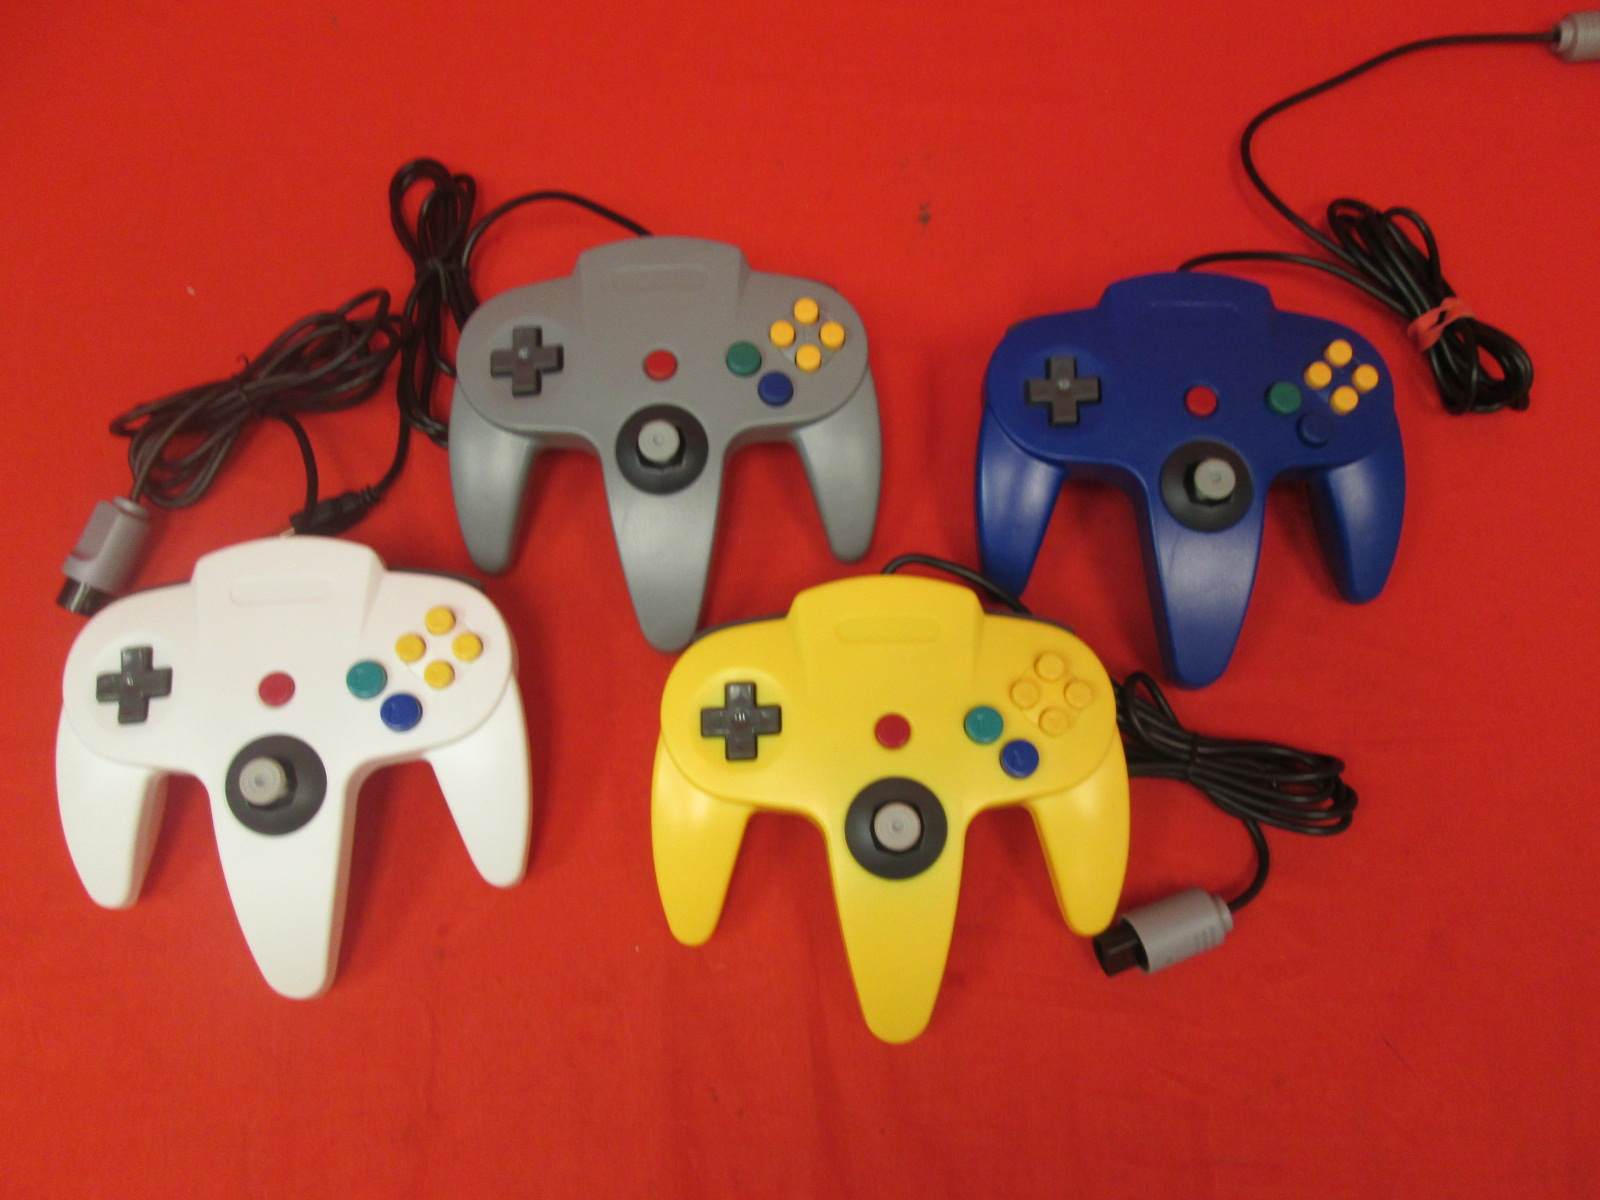 Image 3 of Nintendo 64 System Video Game Console With 4 Controllers